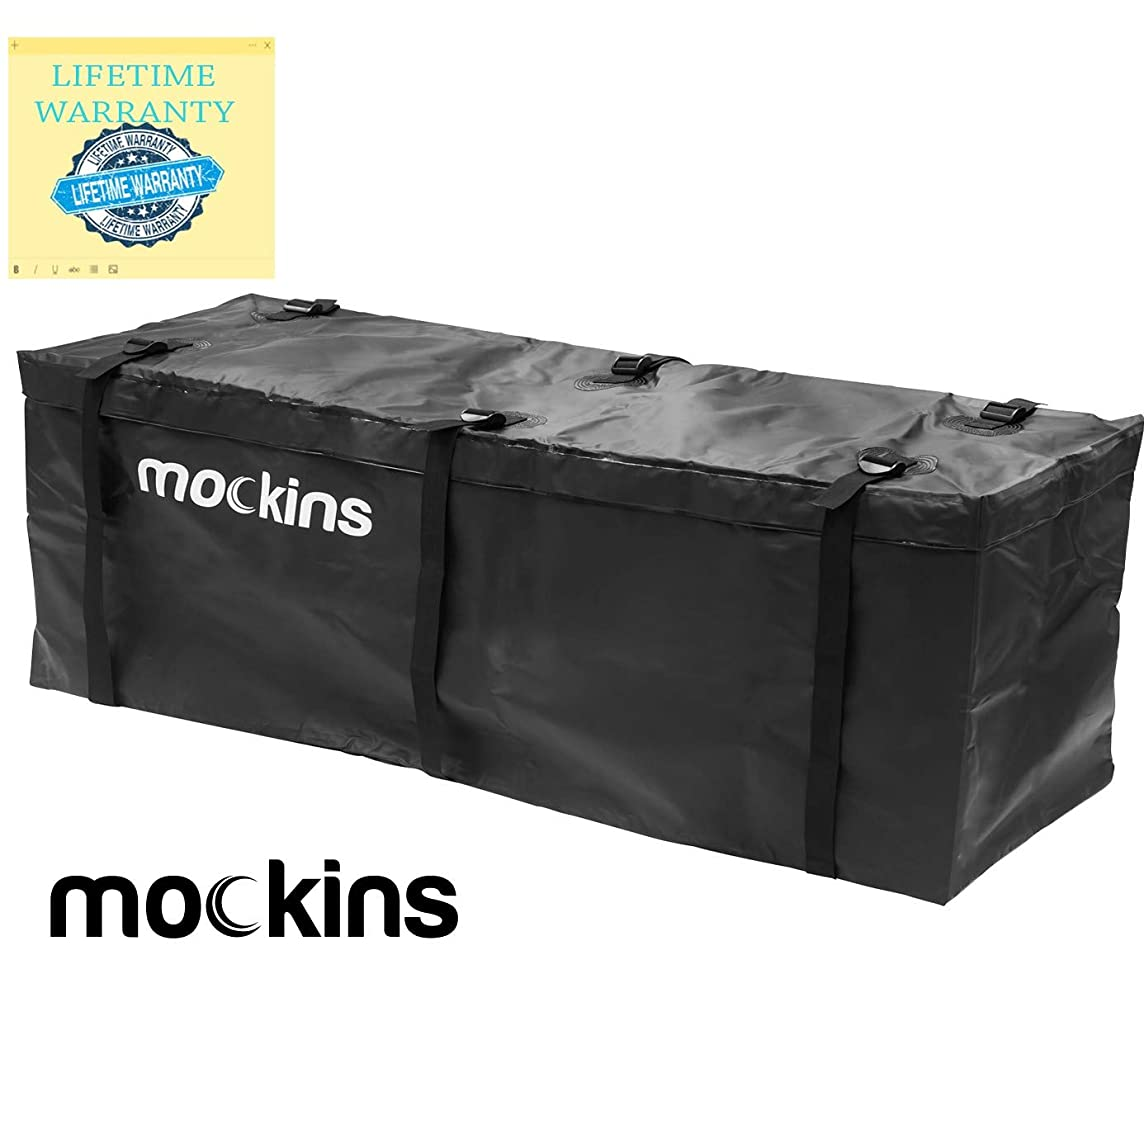 Mockins Waterproof Cargo Carrier Bag   The Hitch Rack Cargo Bag is Made from Heavy Duty Abrasion Resistant Vinyl with 15.5 Cu.ft.Capacity at 57